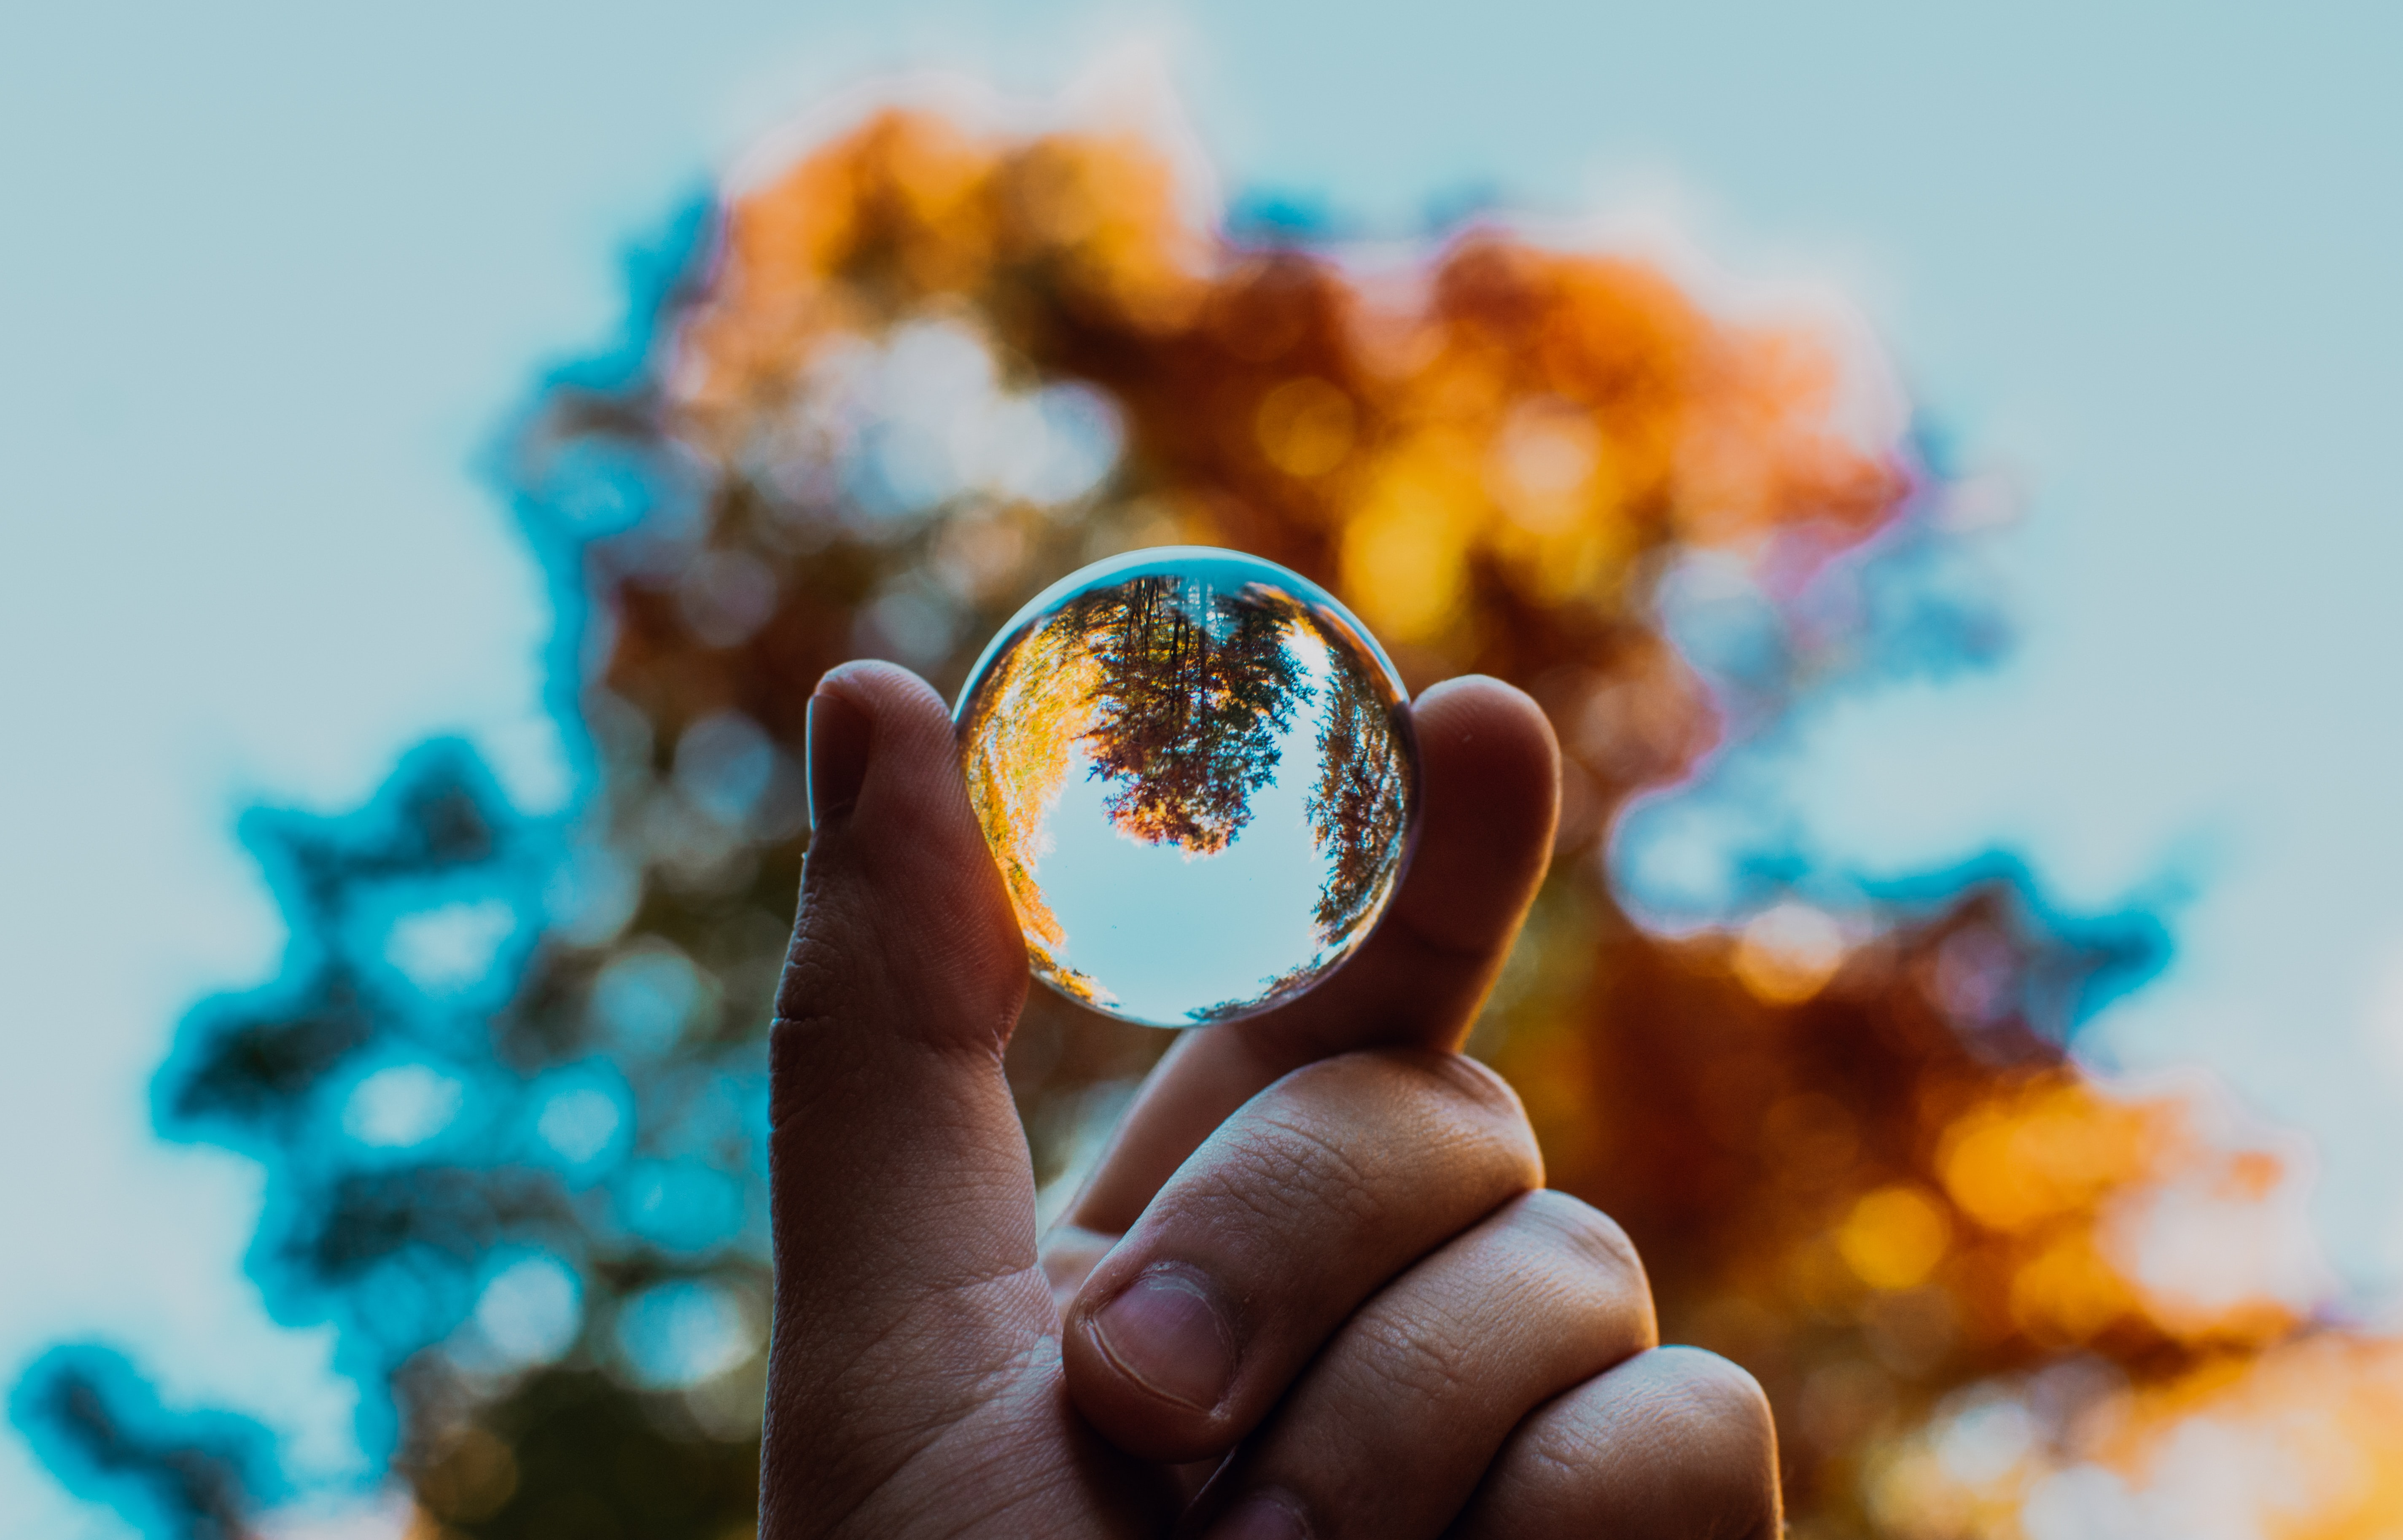 Person holding a glass ball that is reflecting the tree behind it